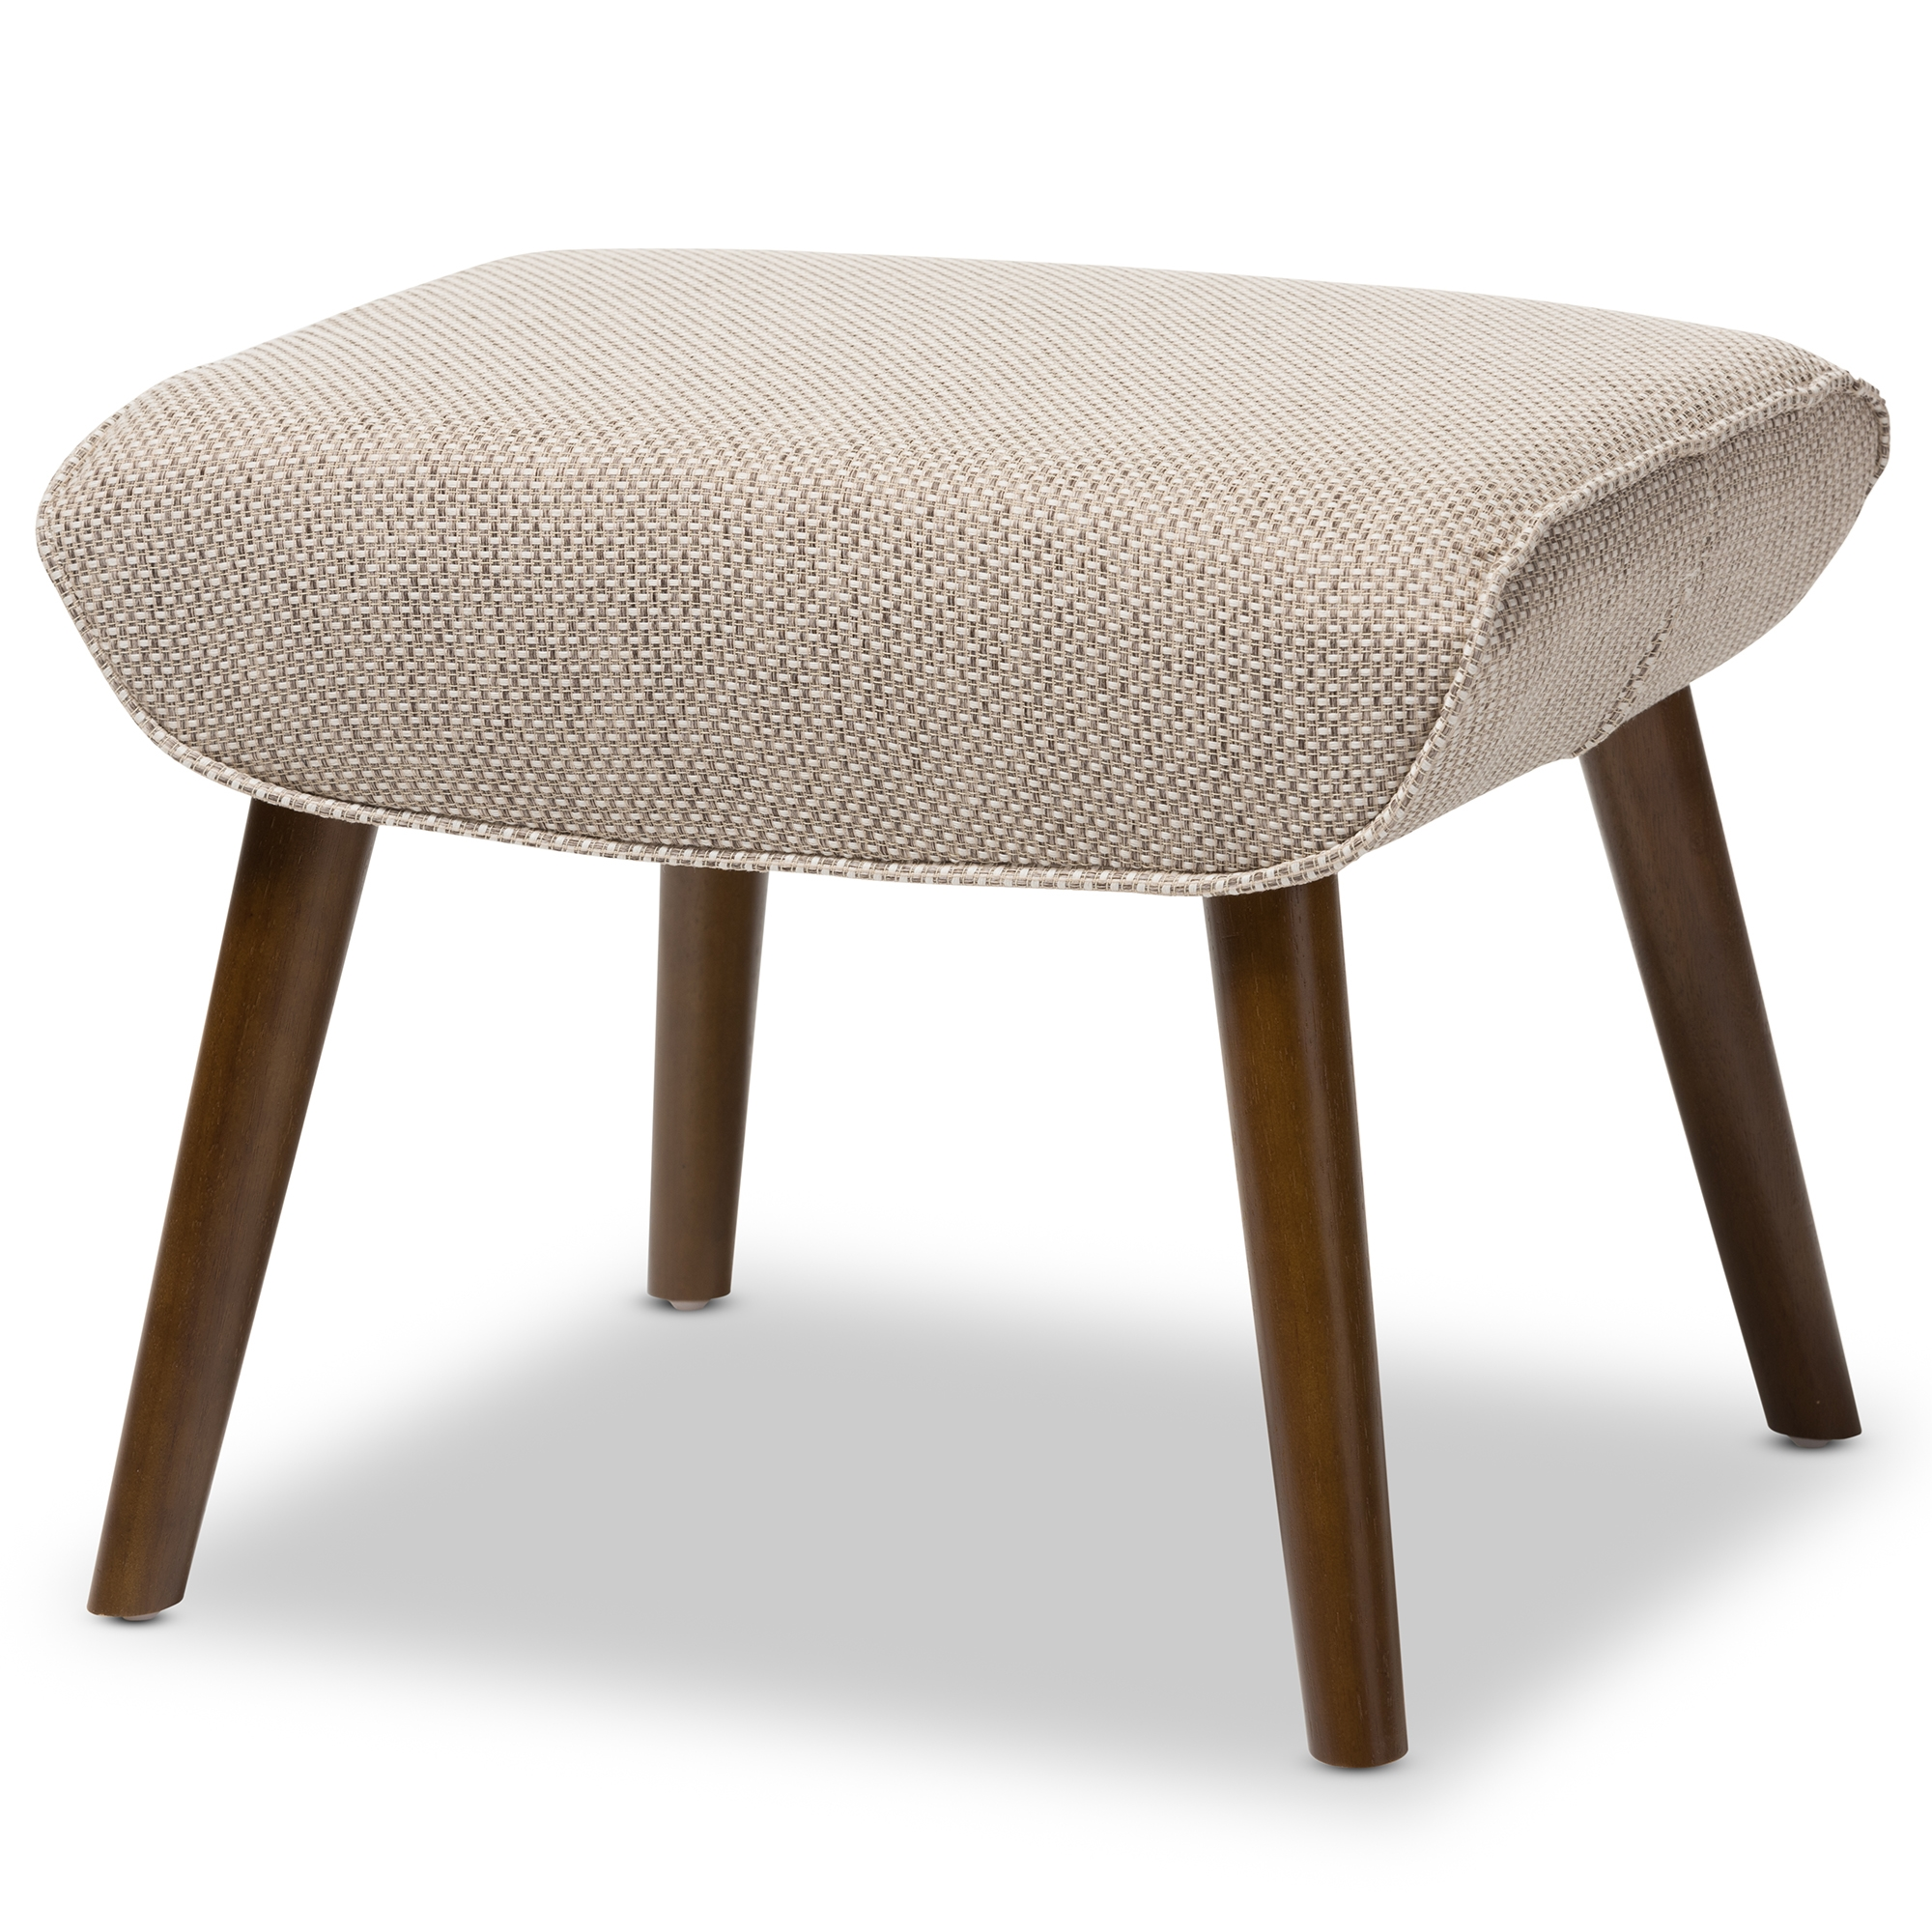 Upholstered Stools For Living Room Peenmedia Com